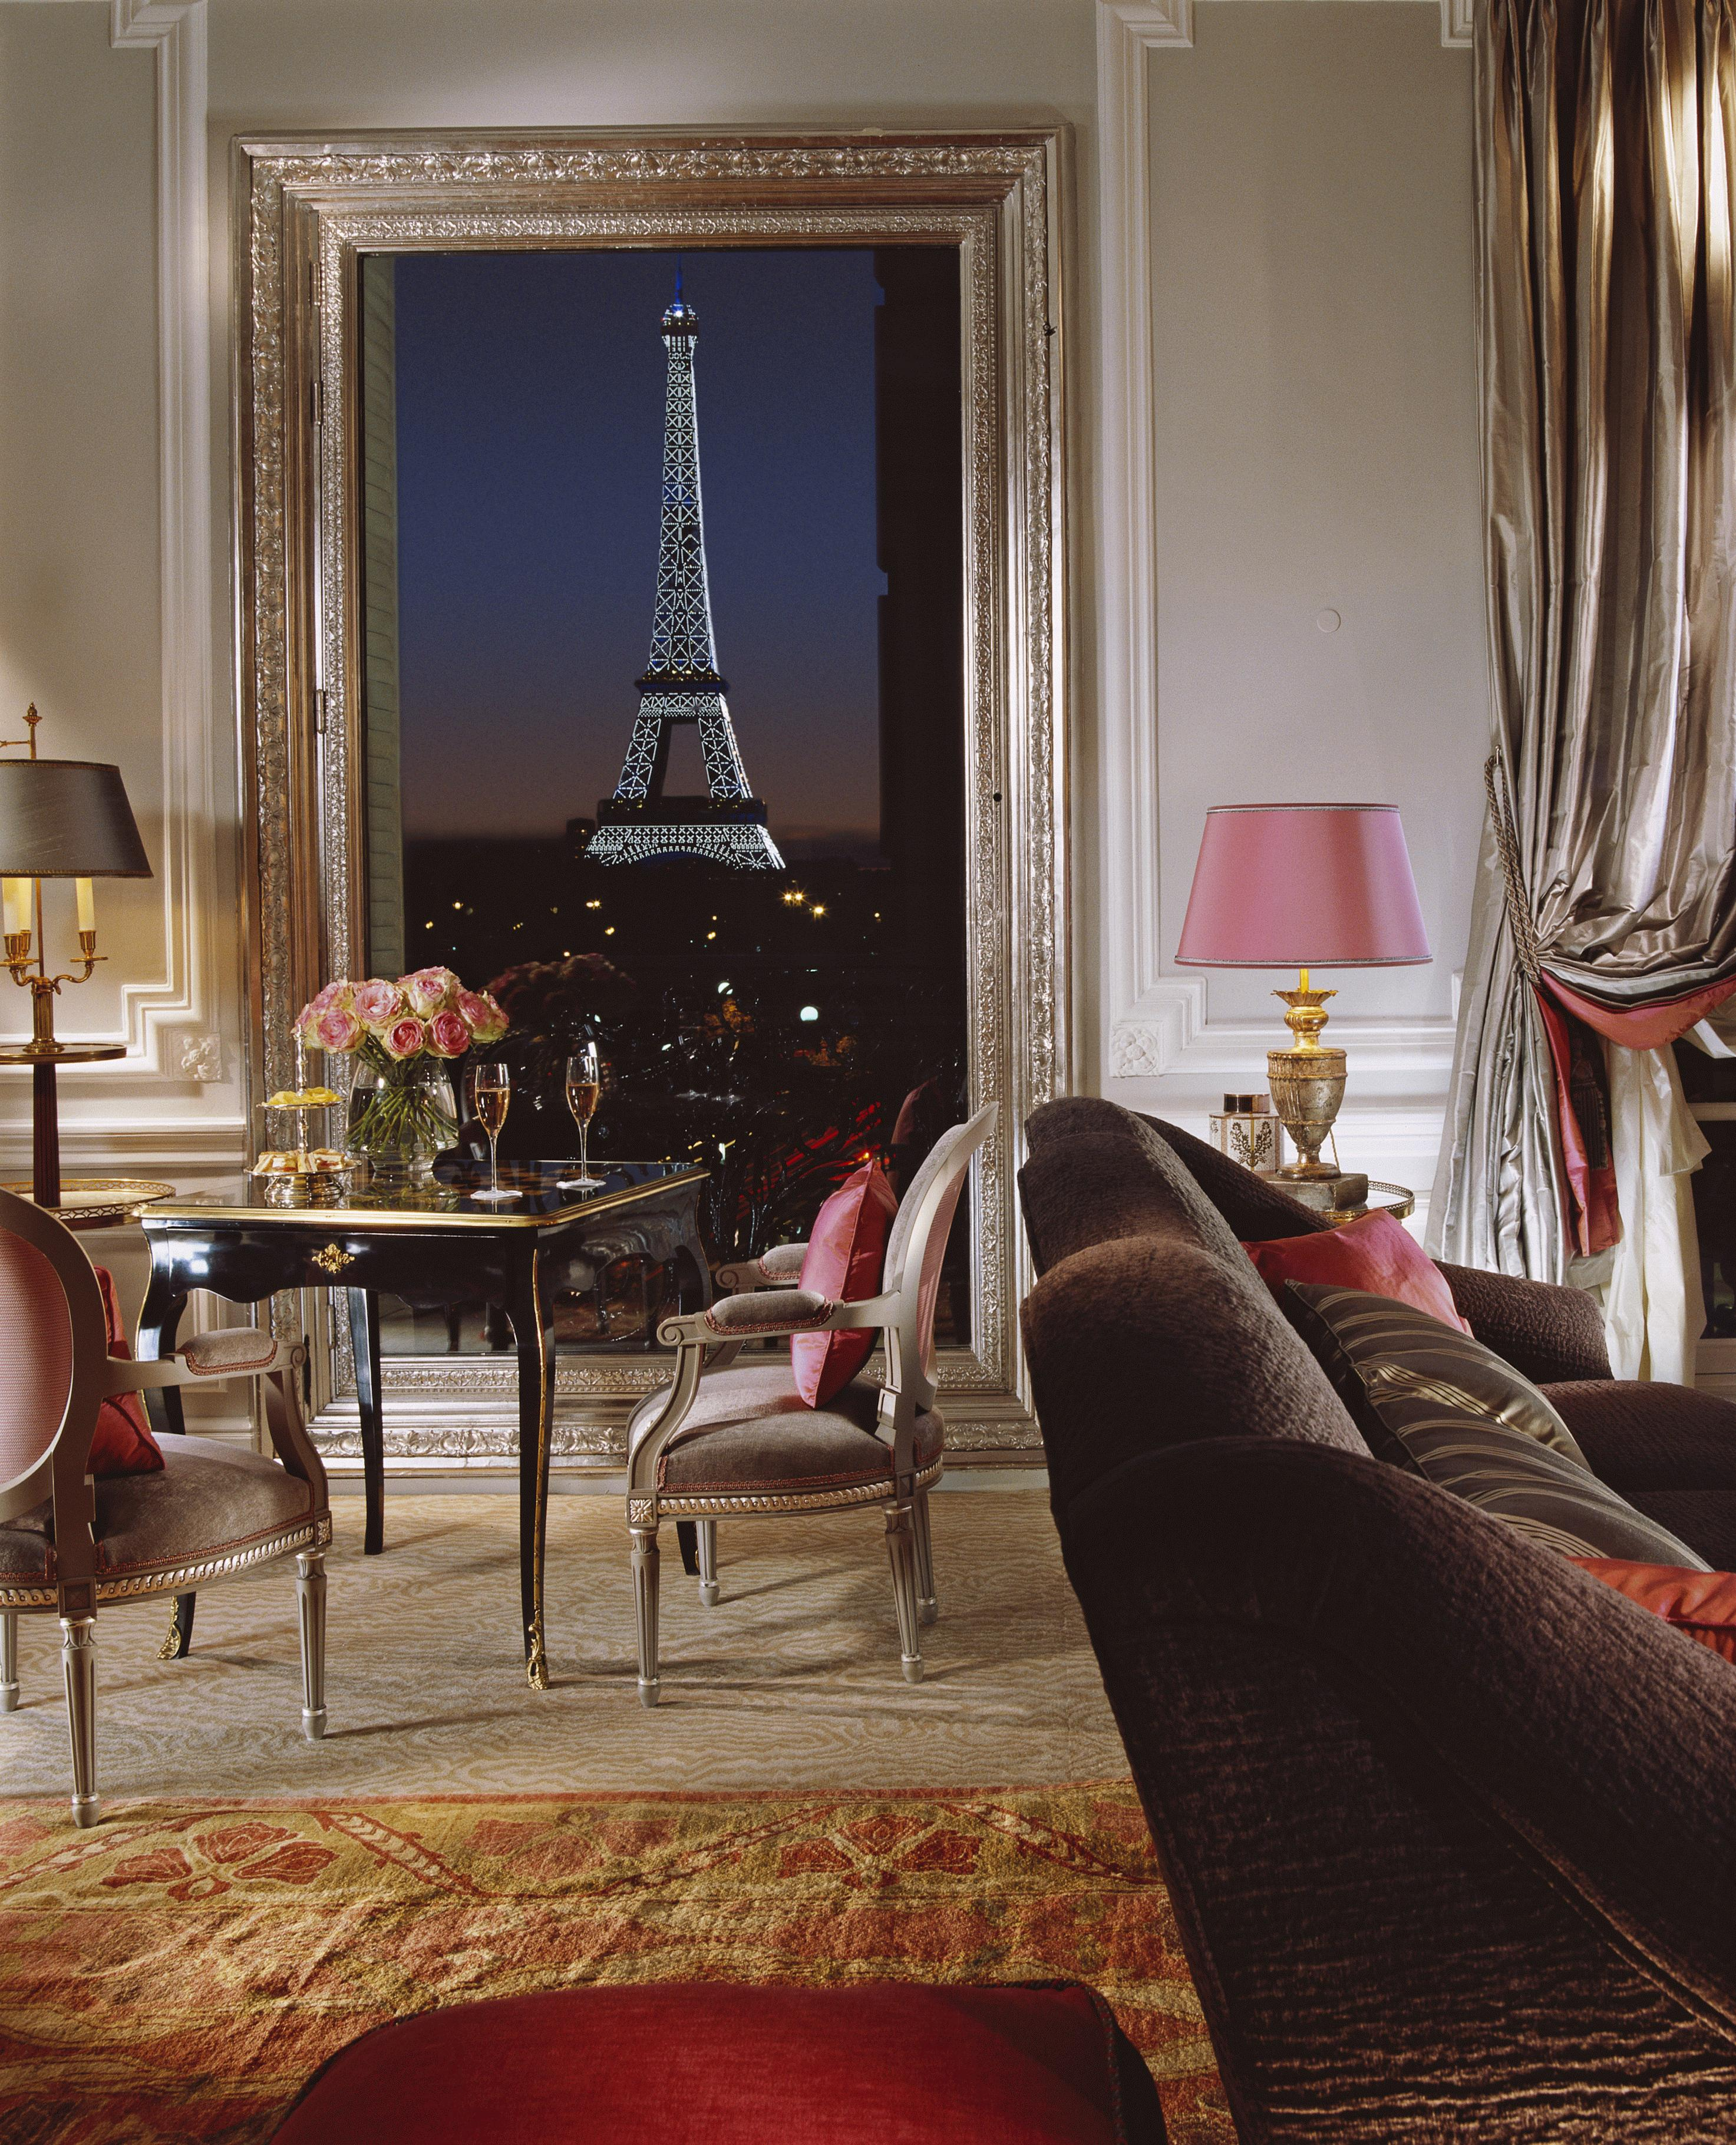 This image: View from an Eiffel Suite at the Hôtel Plaza Athénée.